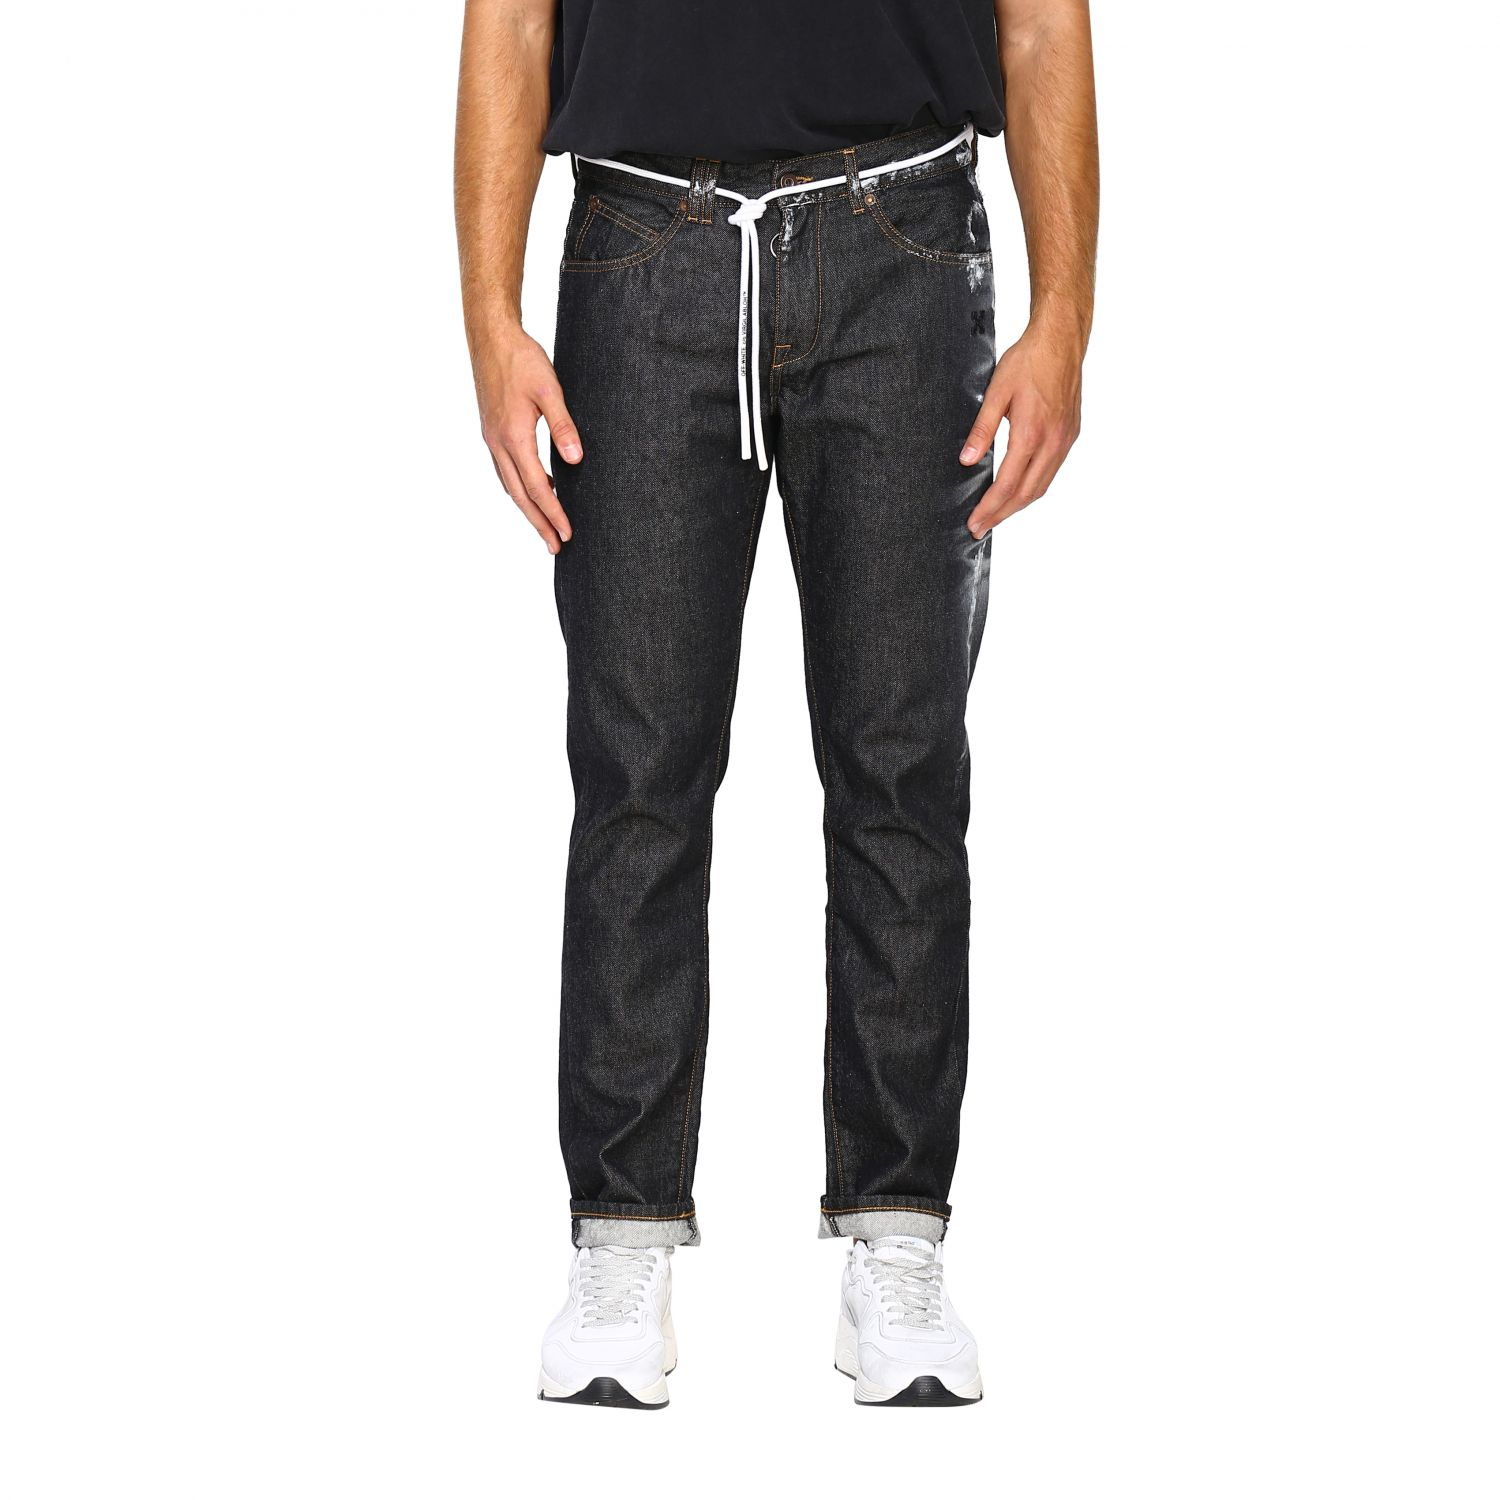 Jeans Off White: Jeans herren Off White schwarz 1